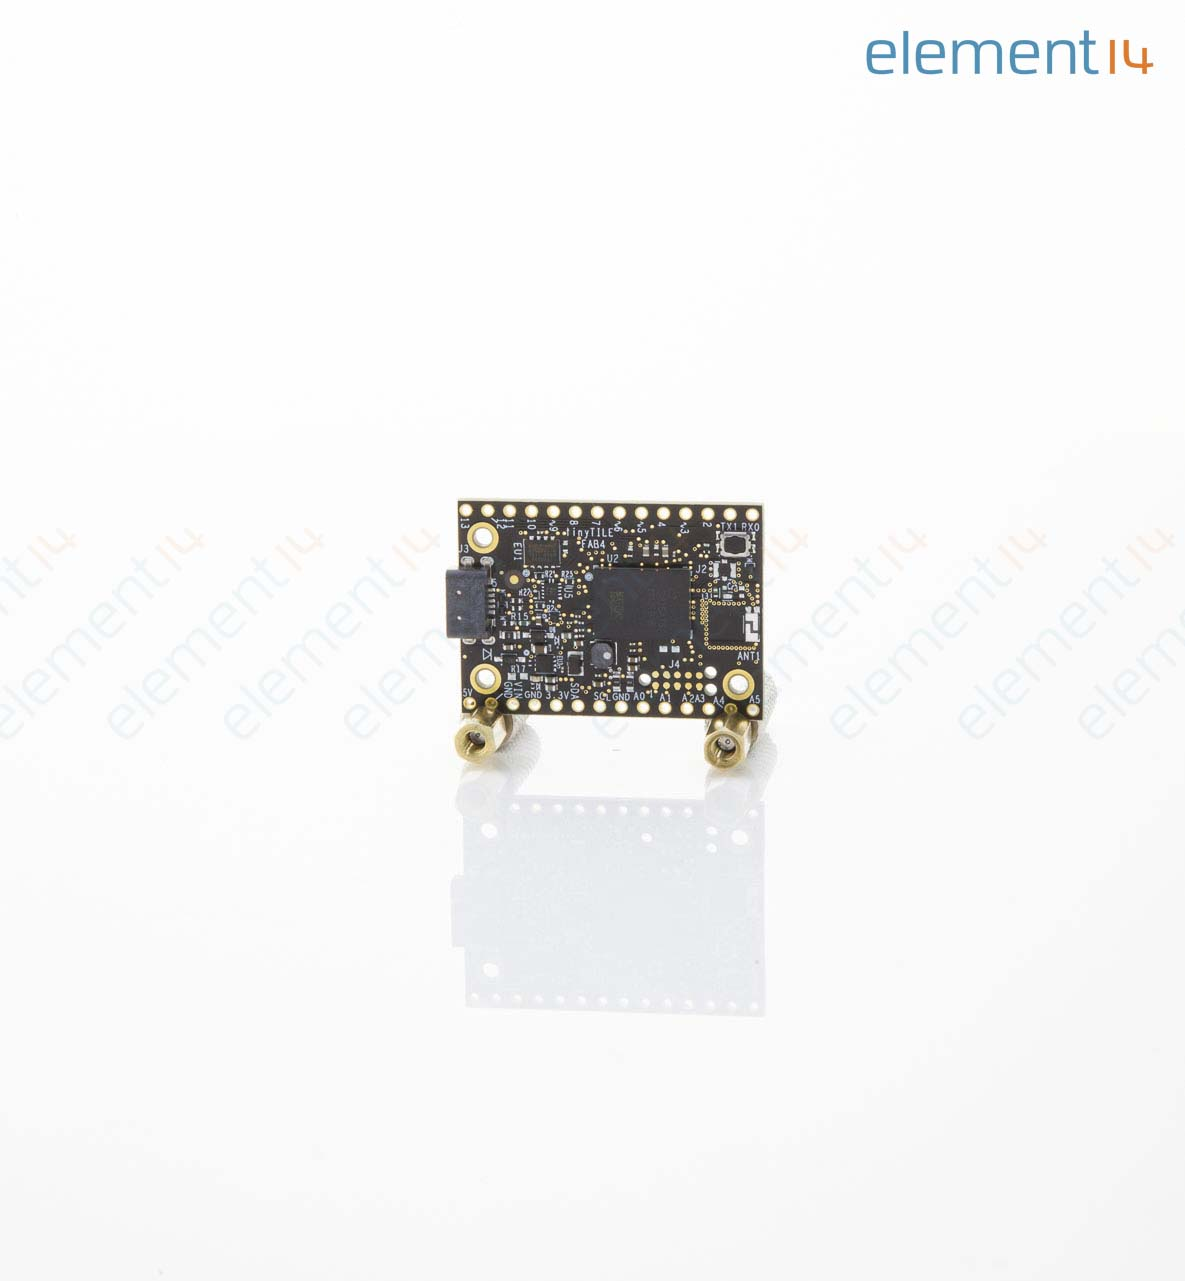 tinyTILE - Intel Curie Module Based Board